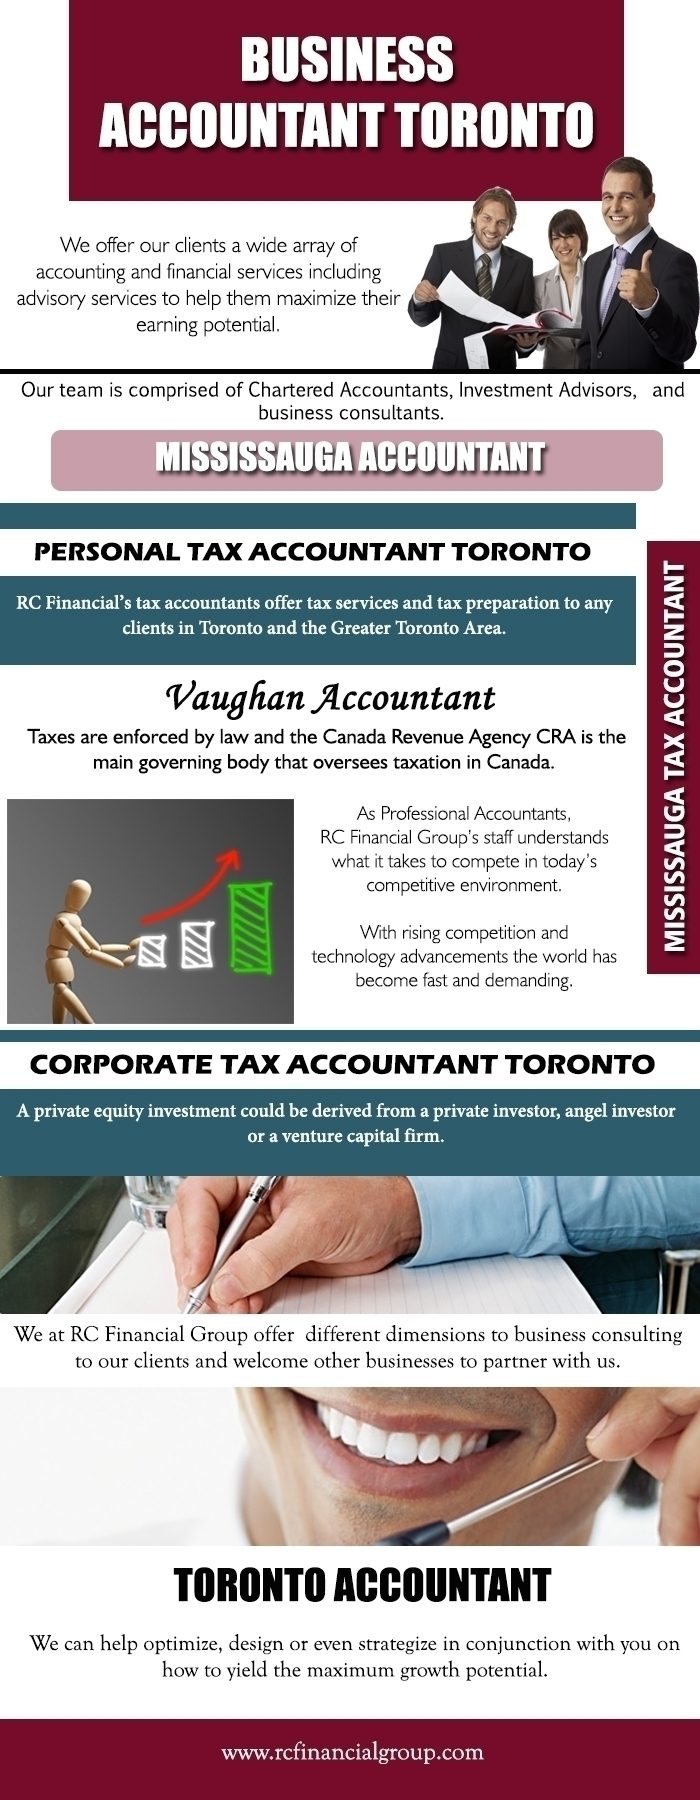 Mississauga Tax Accountant Site - mississaugaaccountant | ello